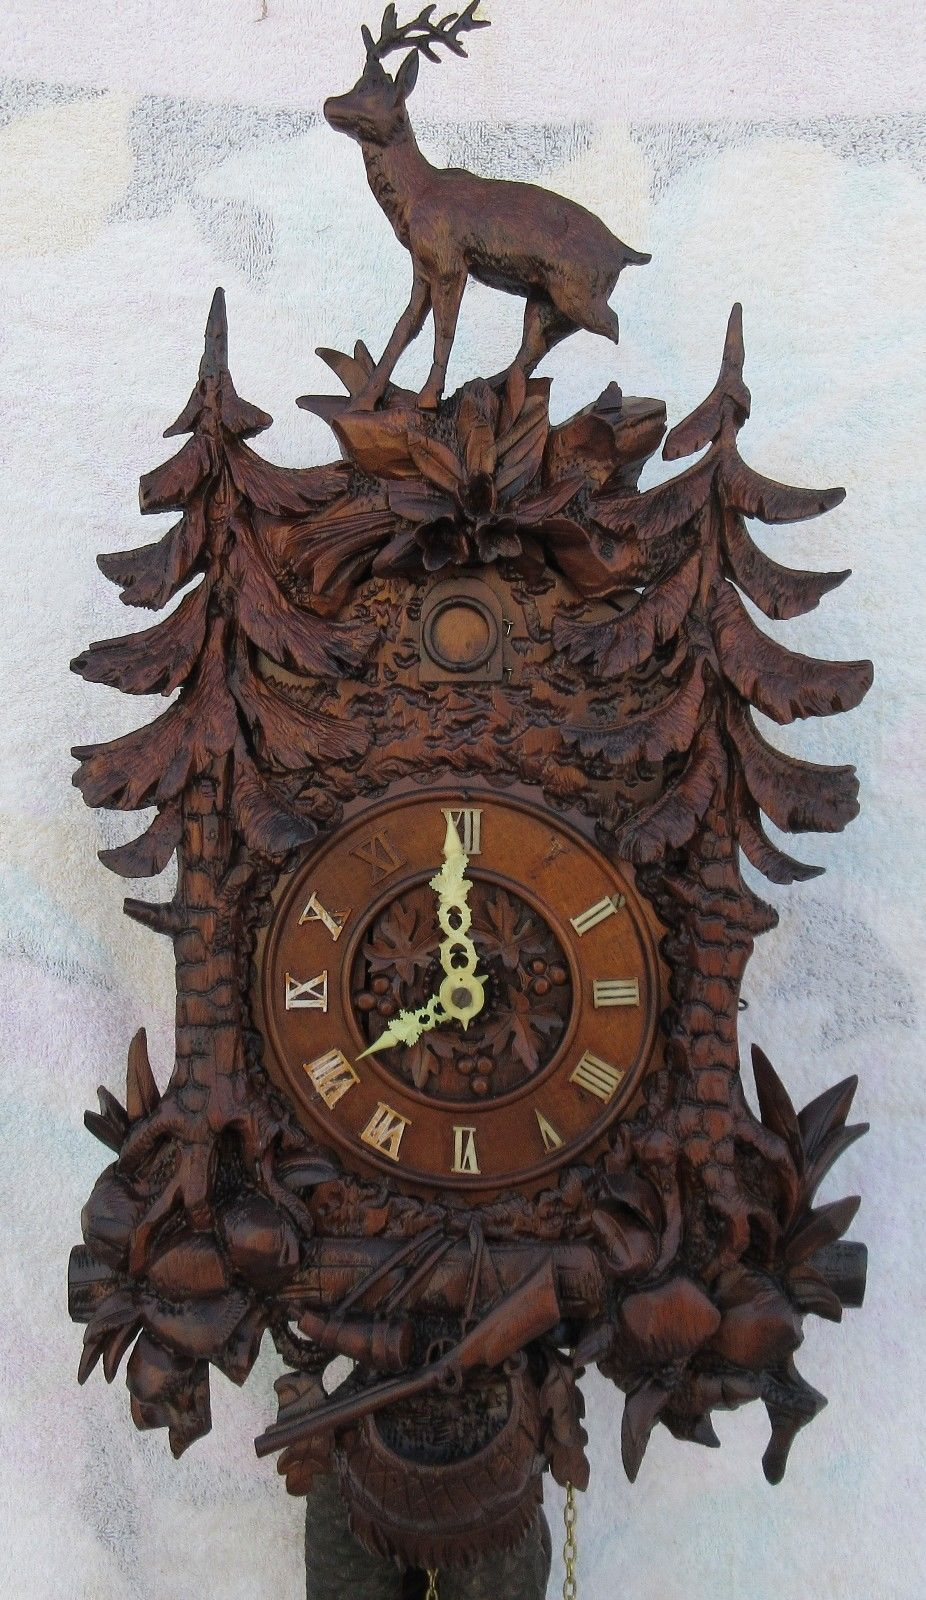 Beautiful German cuckoo clock with deer on top